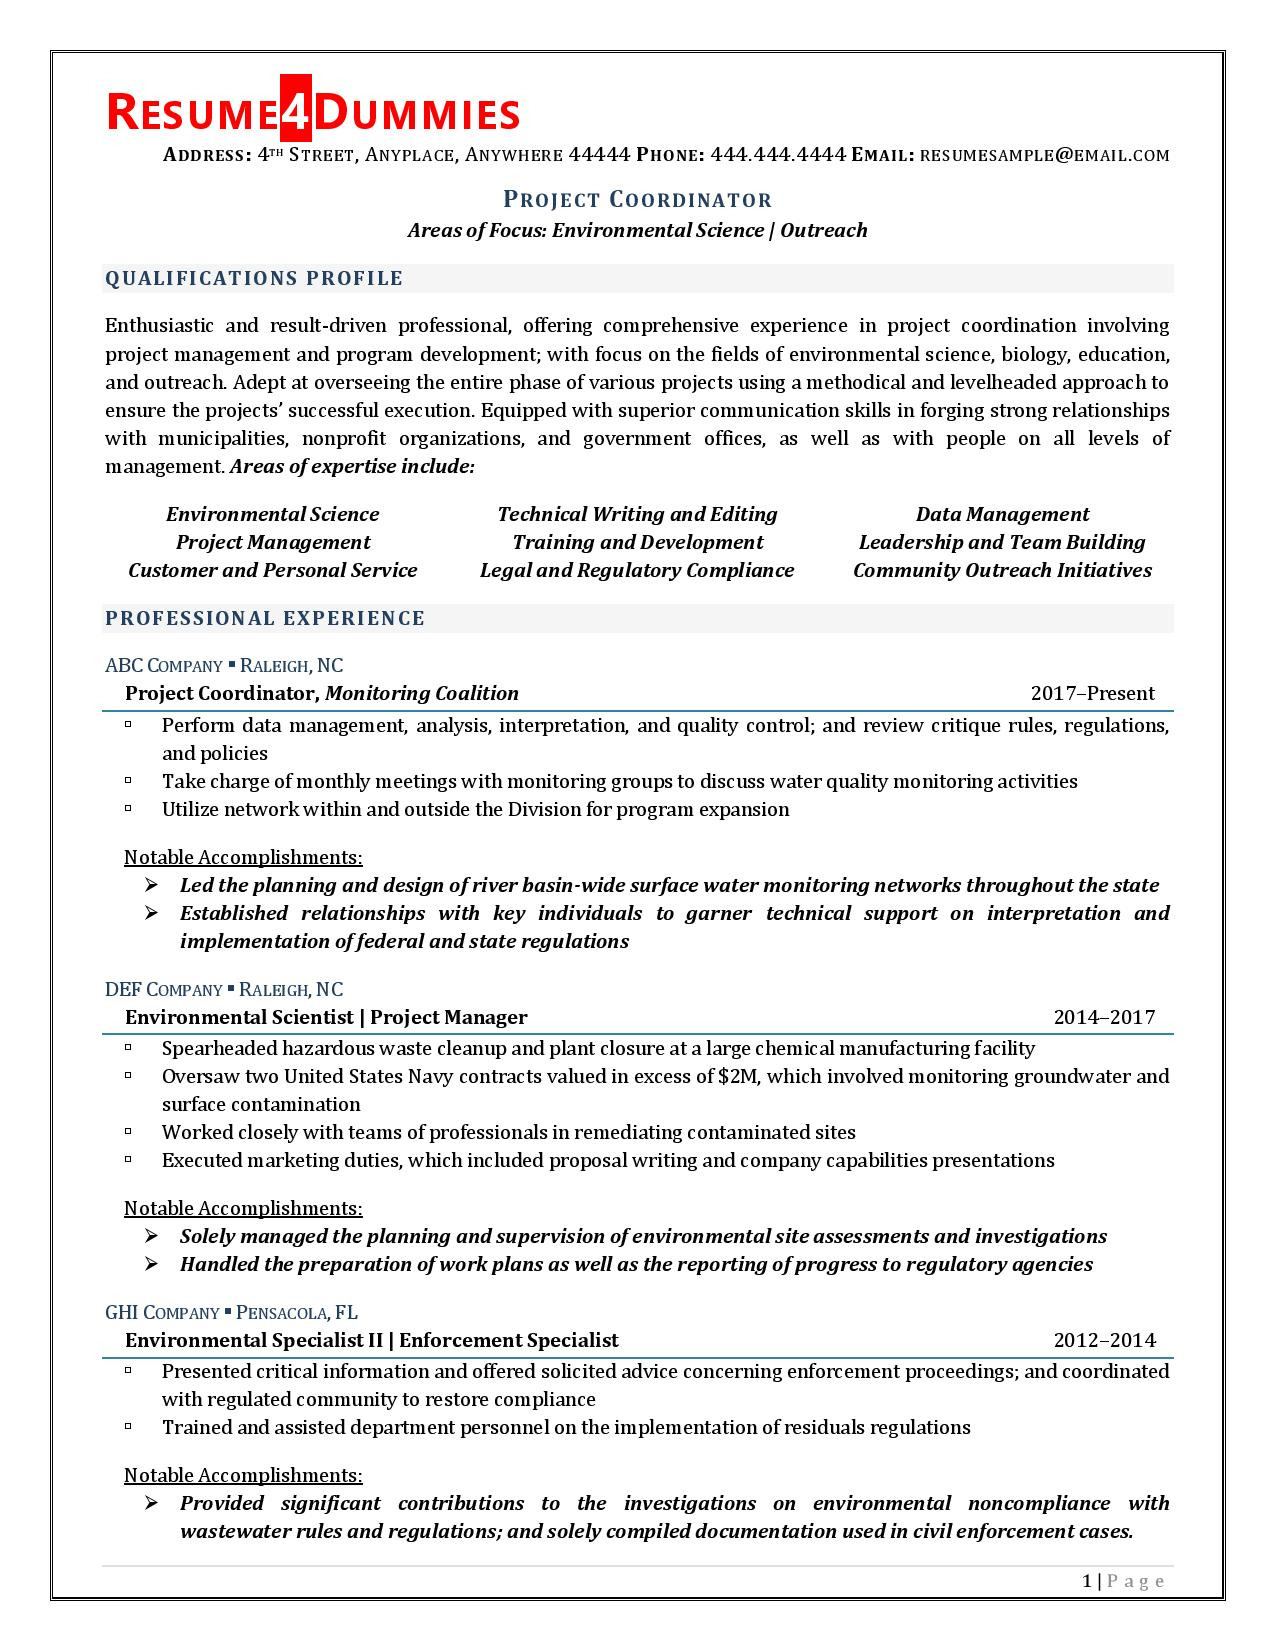 project coordinator resume example and tips you should know program stna objective Resume Program Coordinator Resume